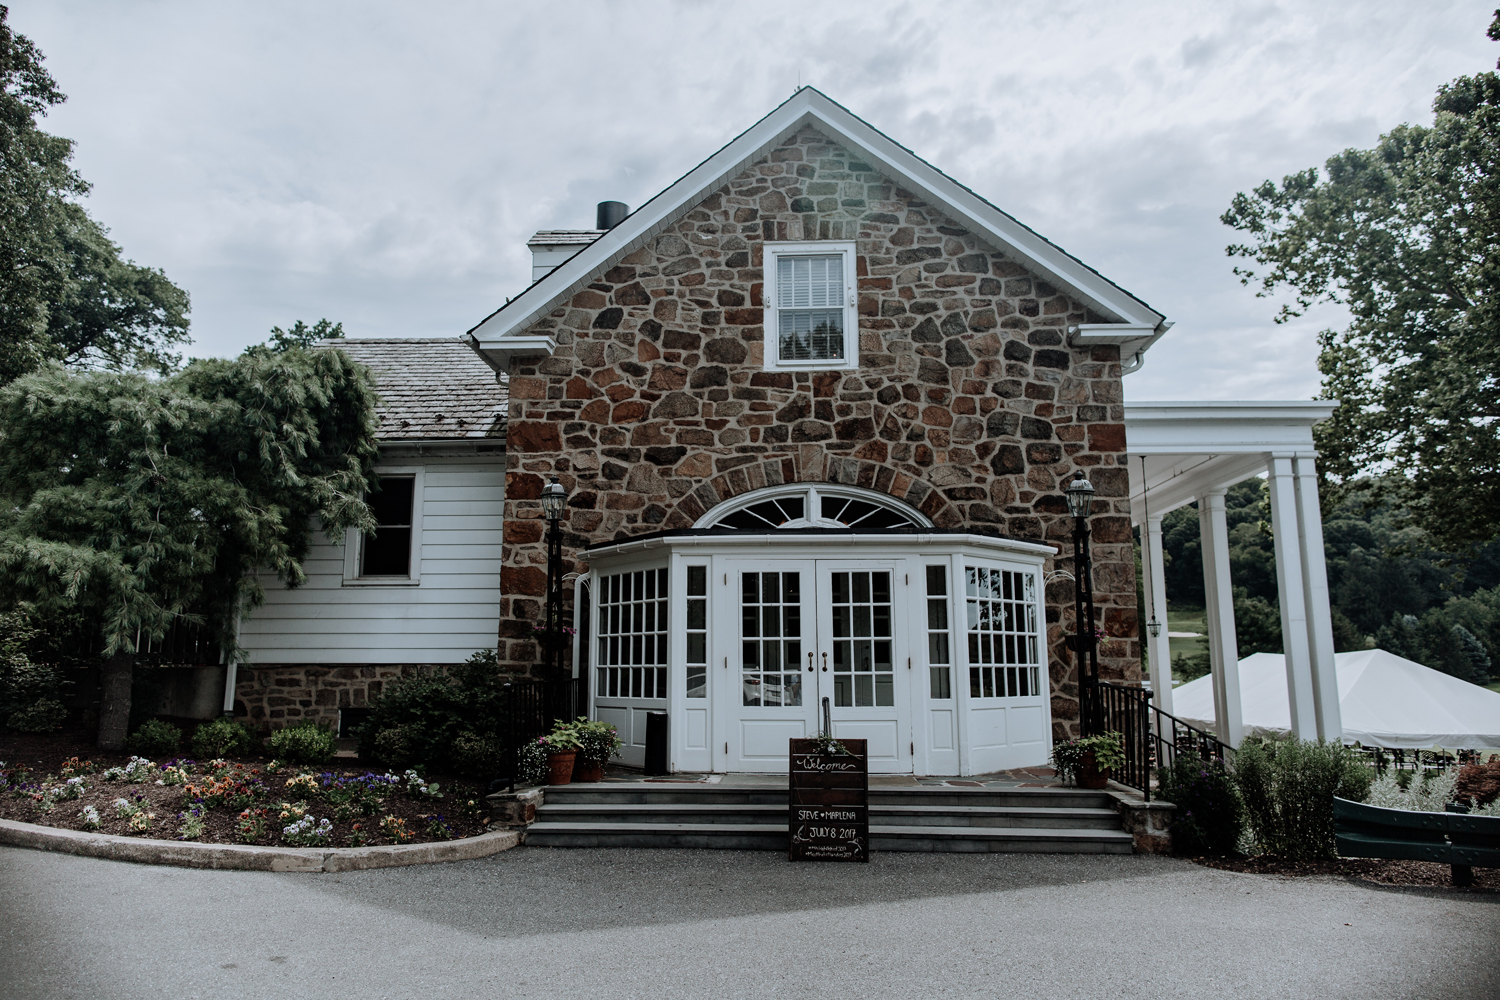 silver-creek-country-club-hellertown-pa-front-entrance-wedding-day-2017